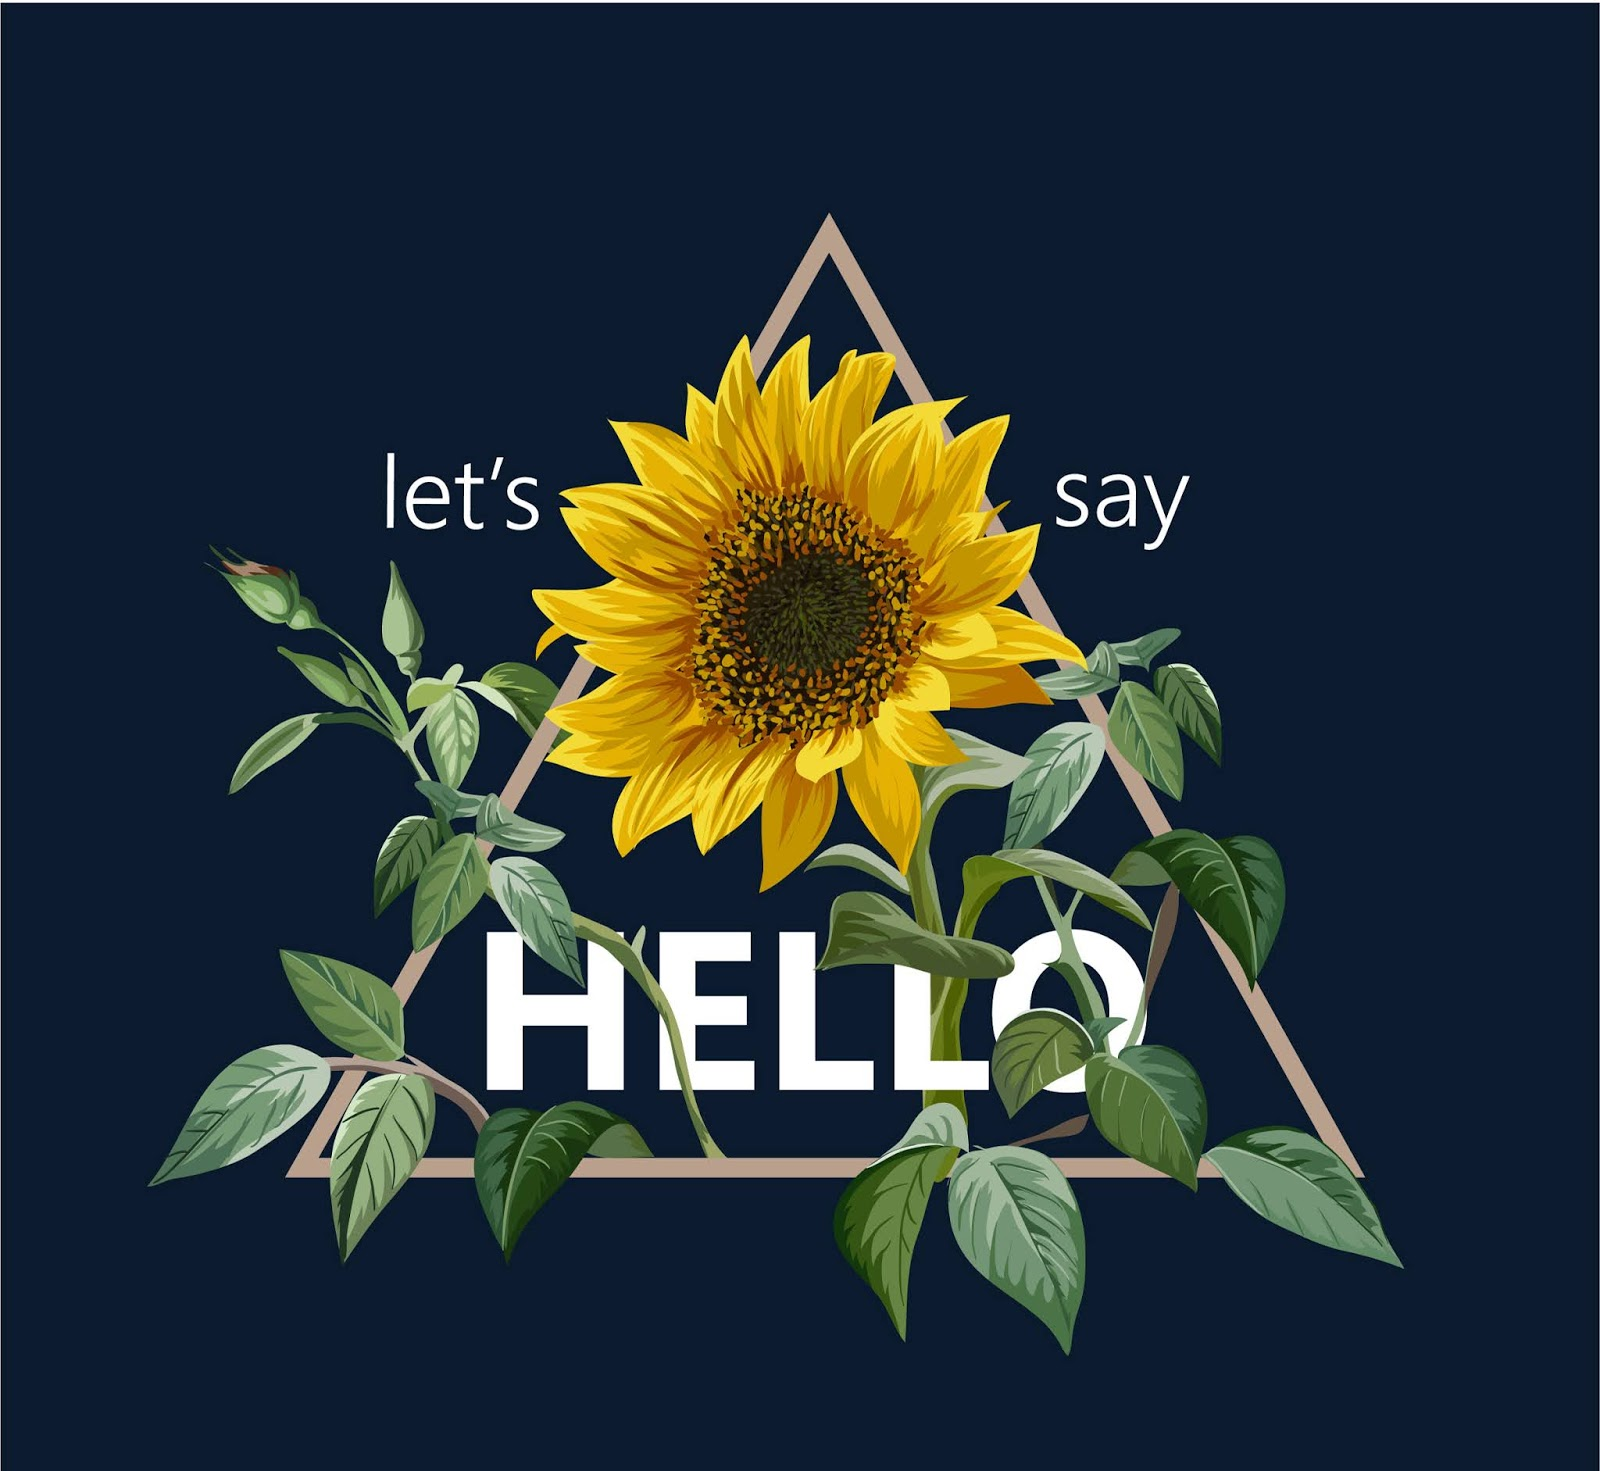 Typography Slogan With Sunflower Illustration Free Download Vector CDR, AI, EPS and PNG Formats